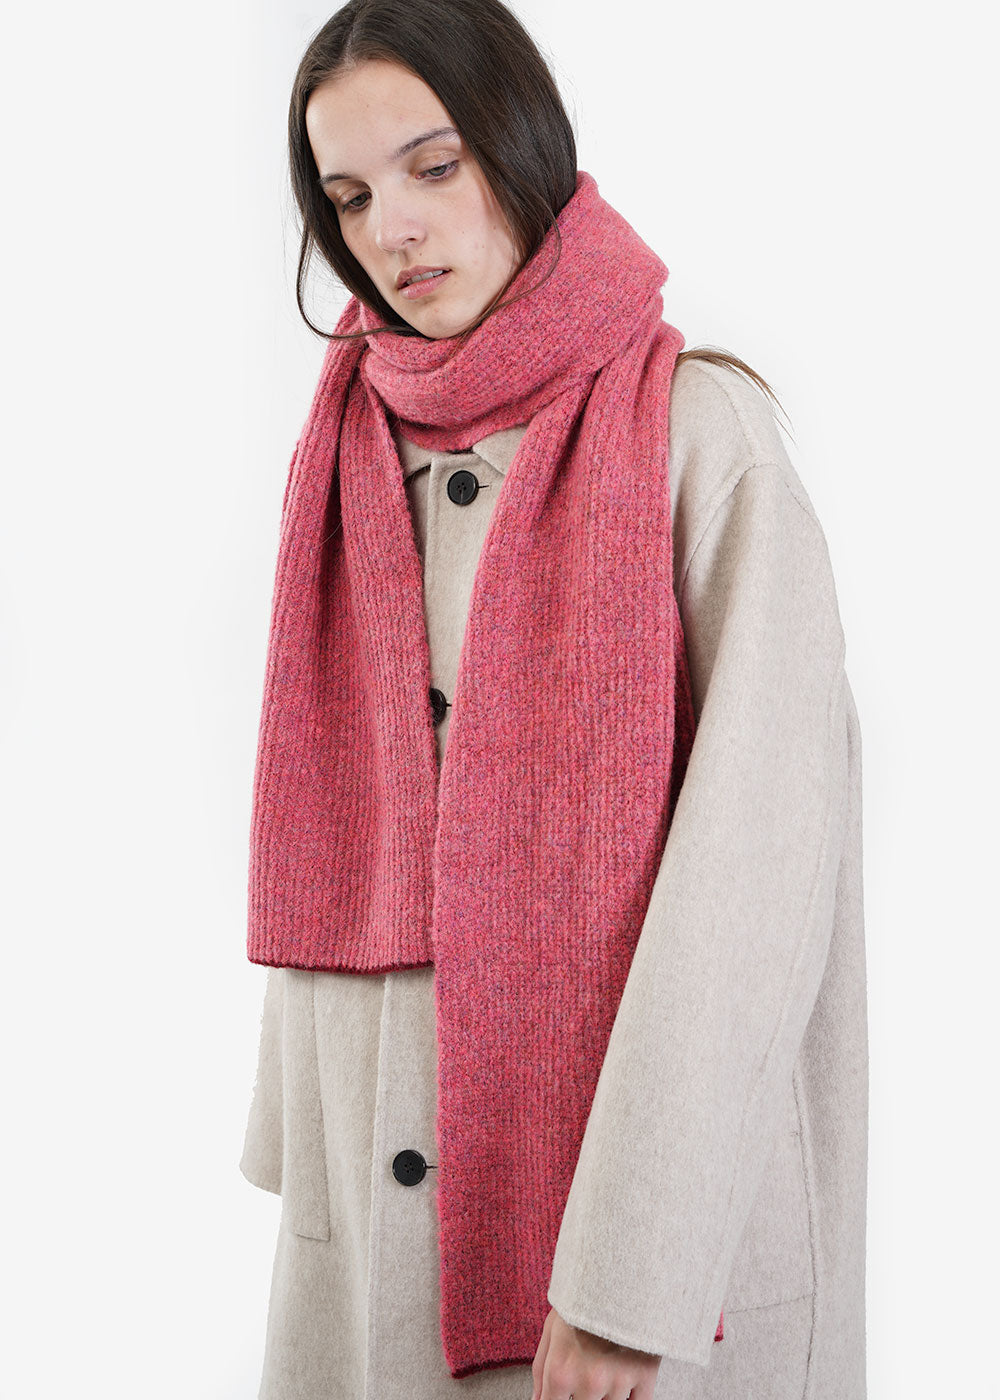 Paloma Wool Plaza Scarf — Shop sustainable fashion and slow fashion at New Classics Studios